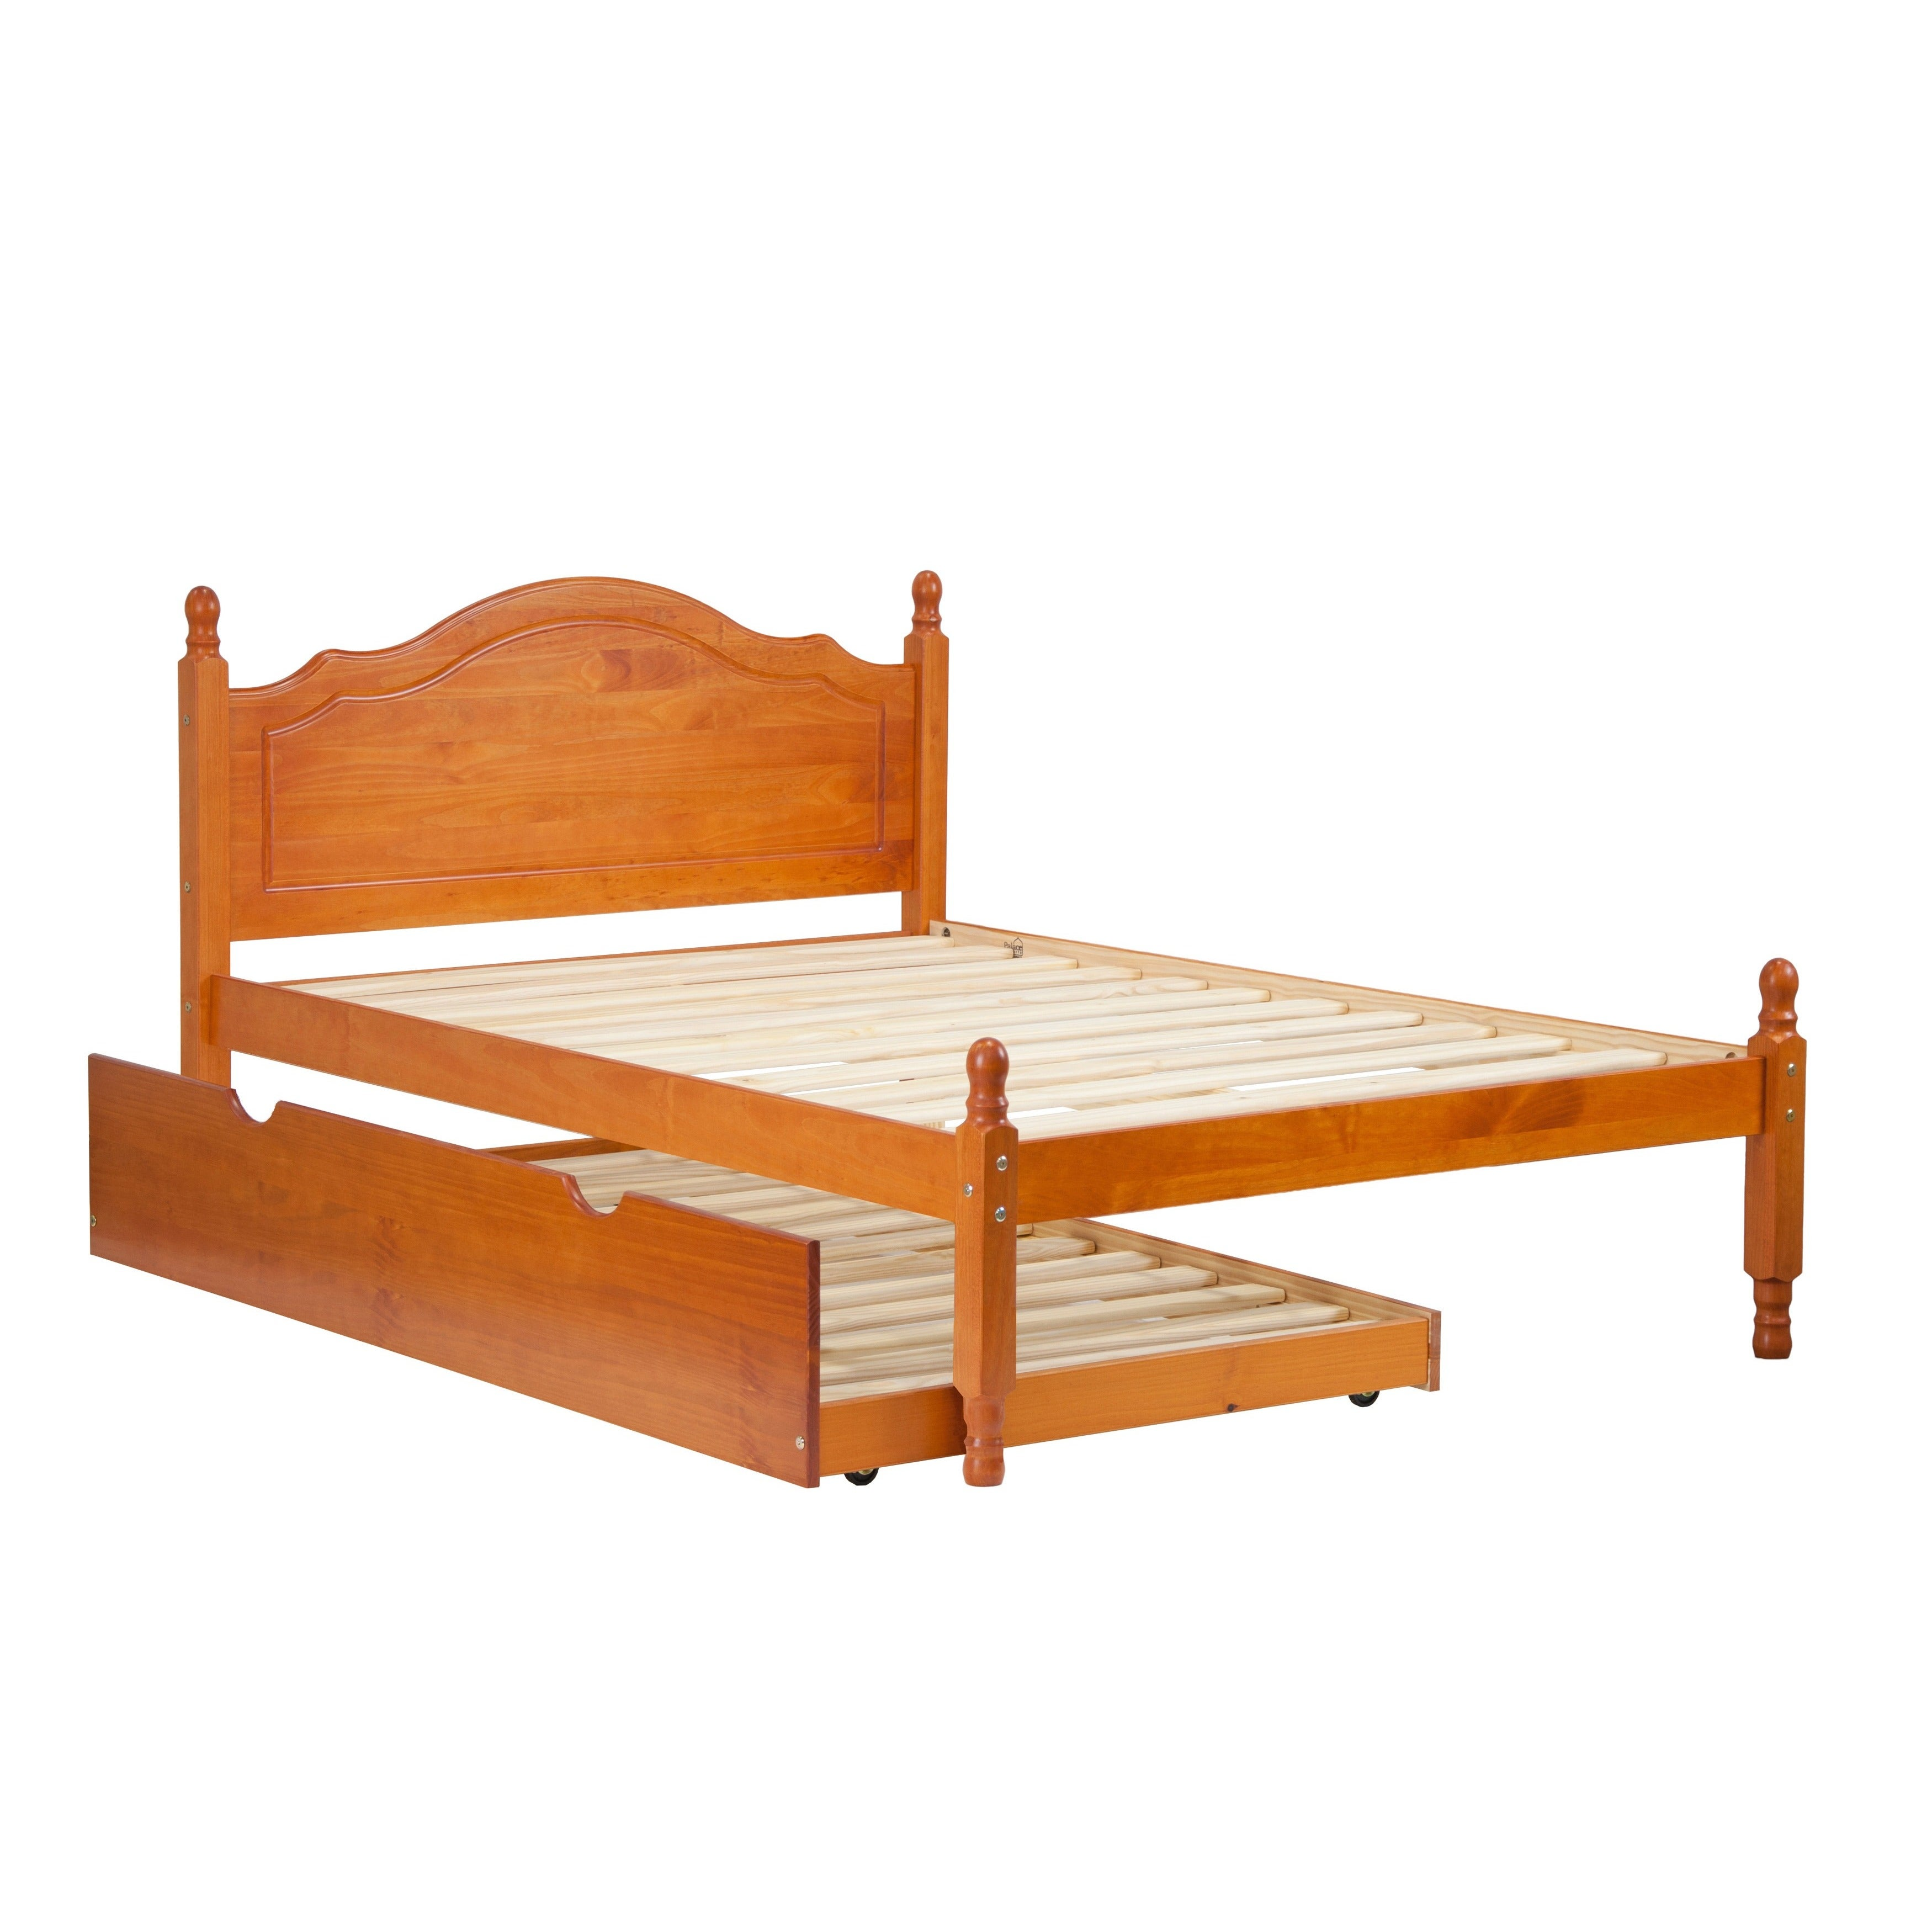 Shop reston full size platform bed solid wood free shipping today overstock com 9491584